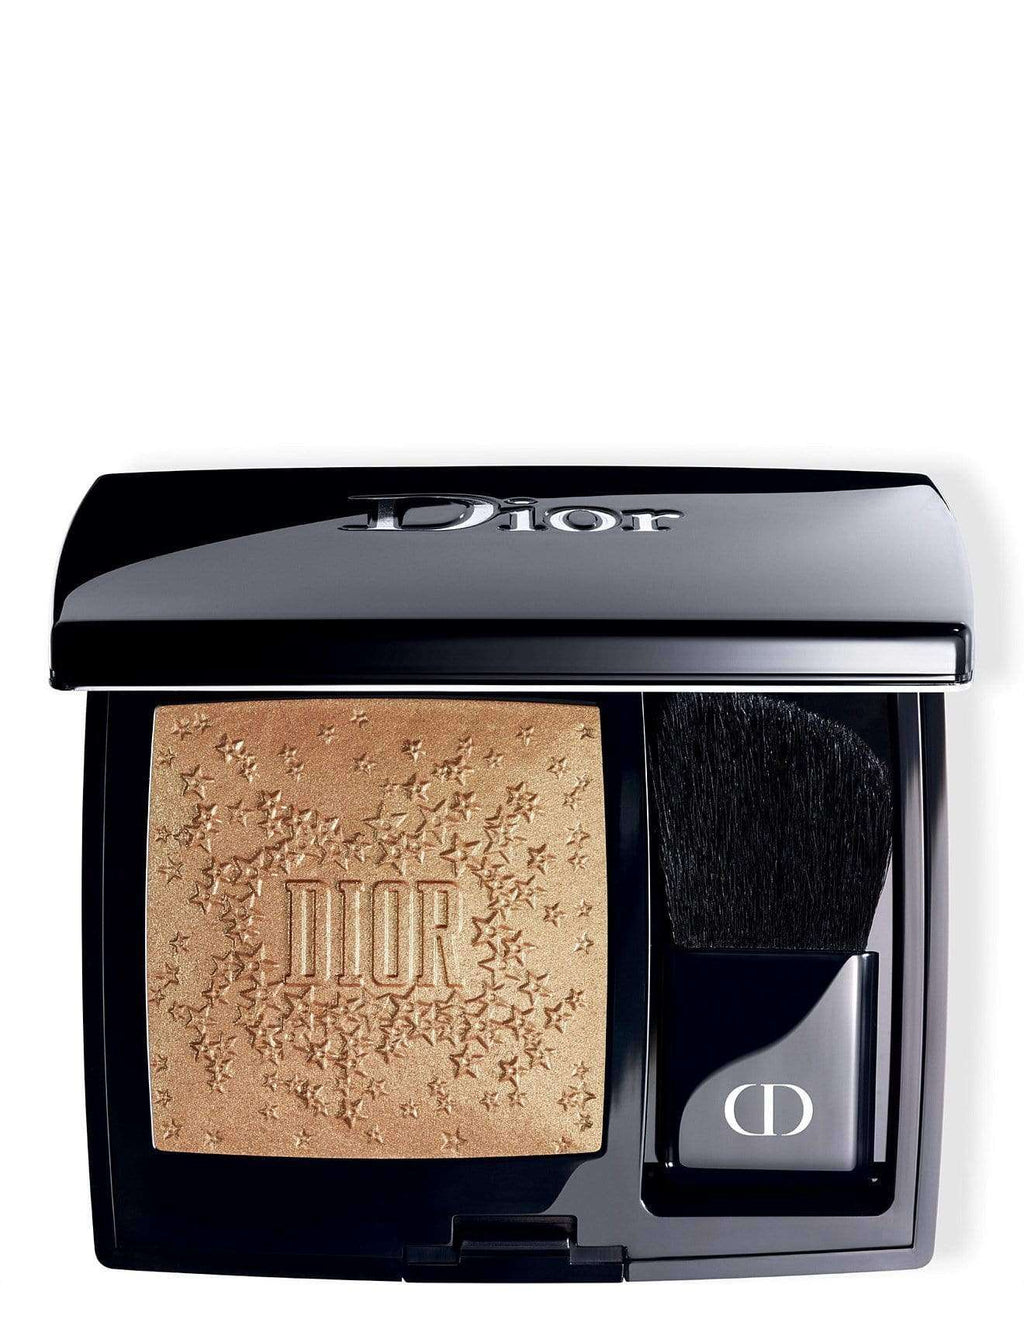 DIOR 5 powder blush 001 midnight wish